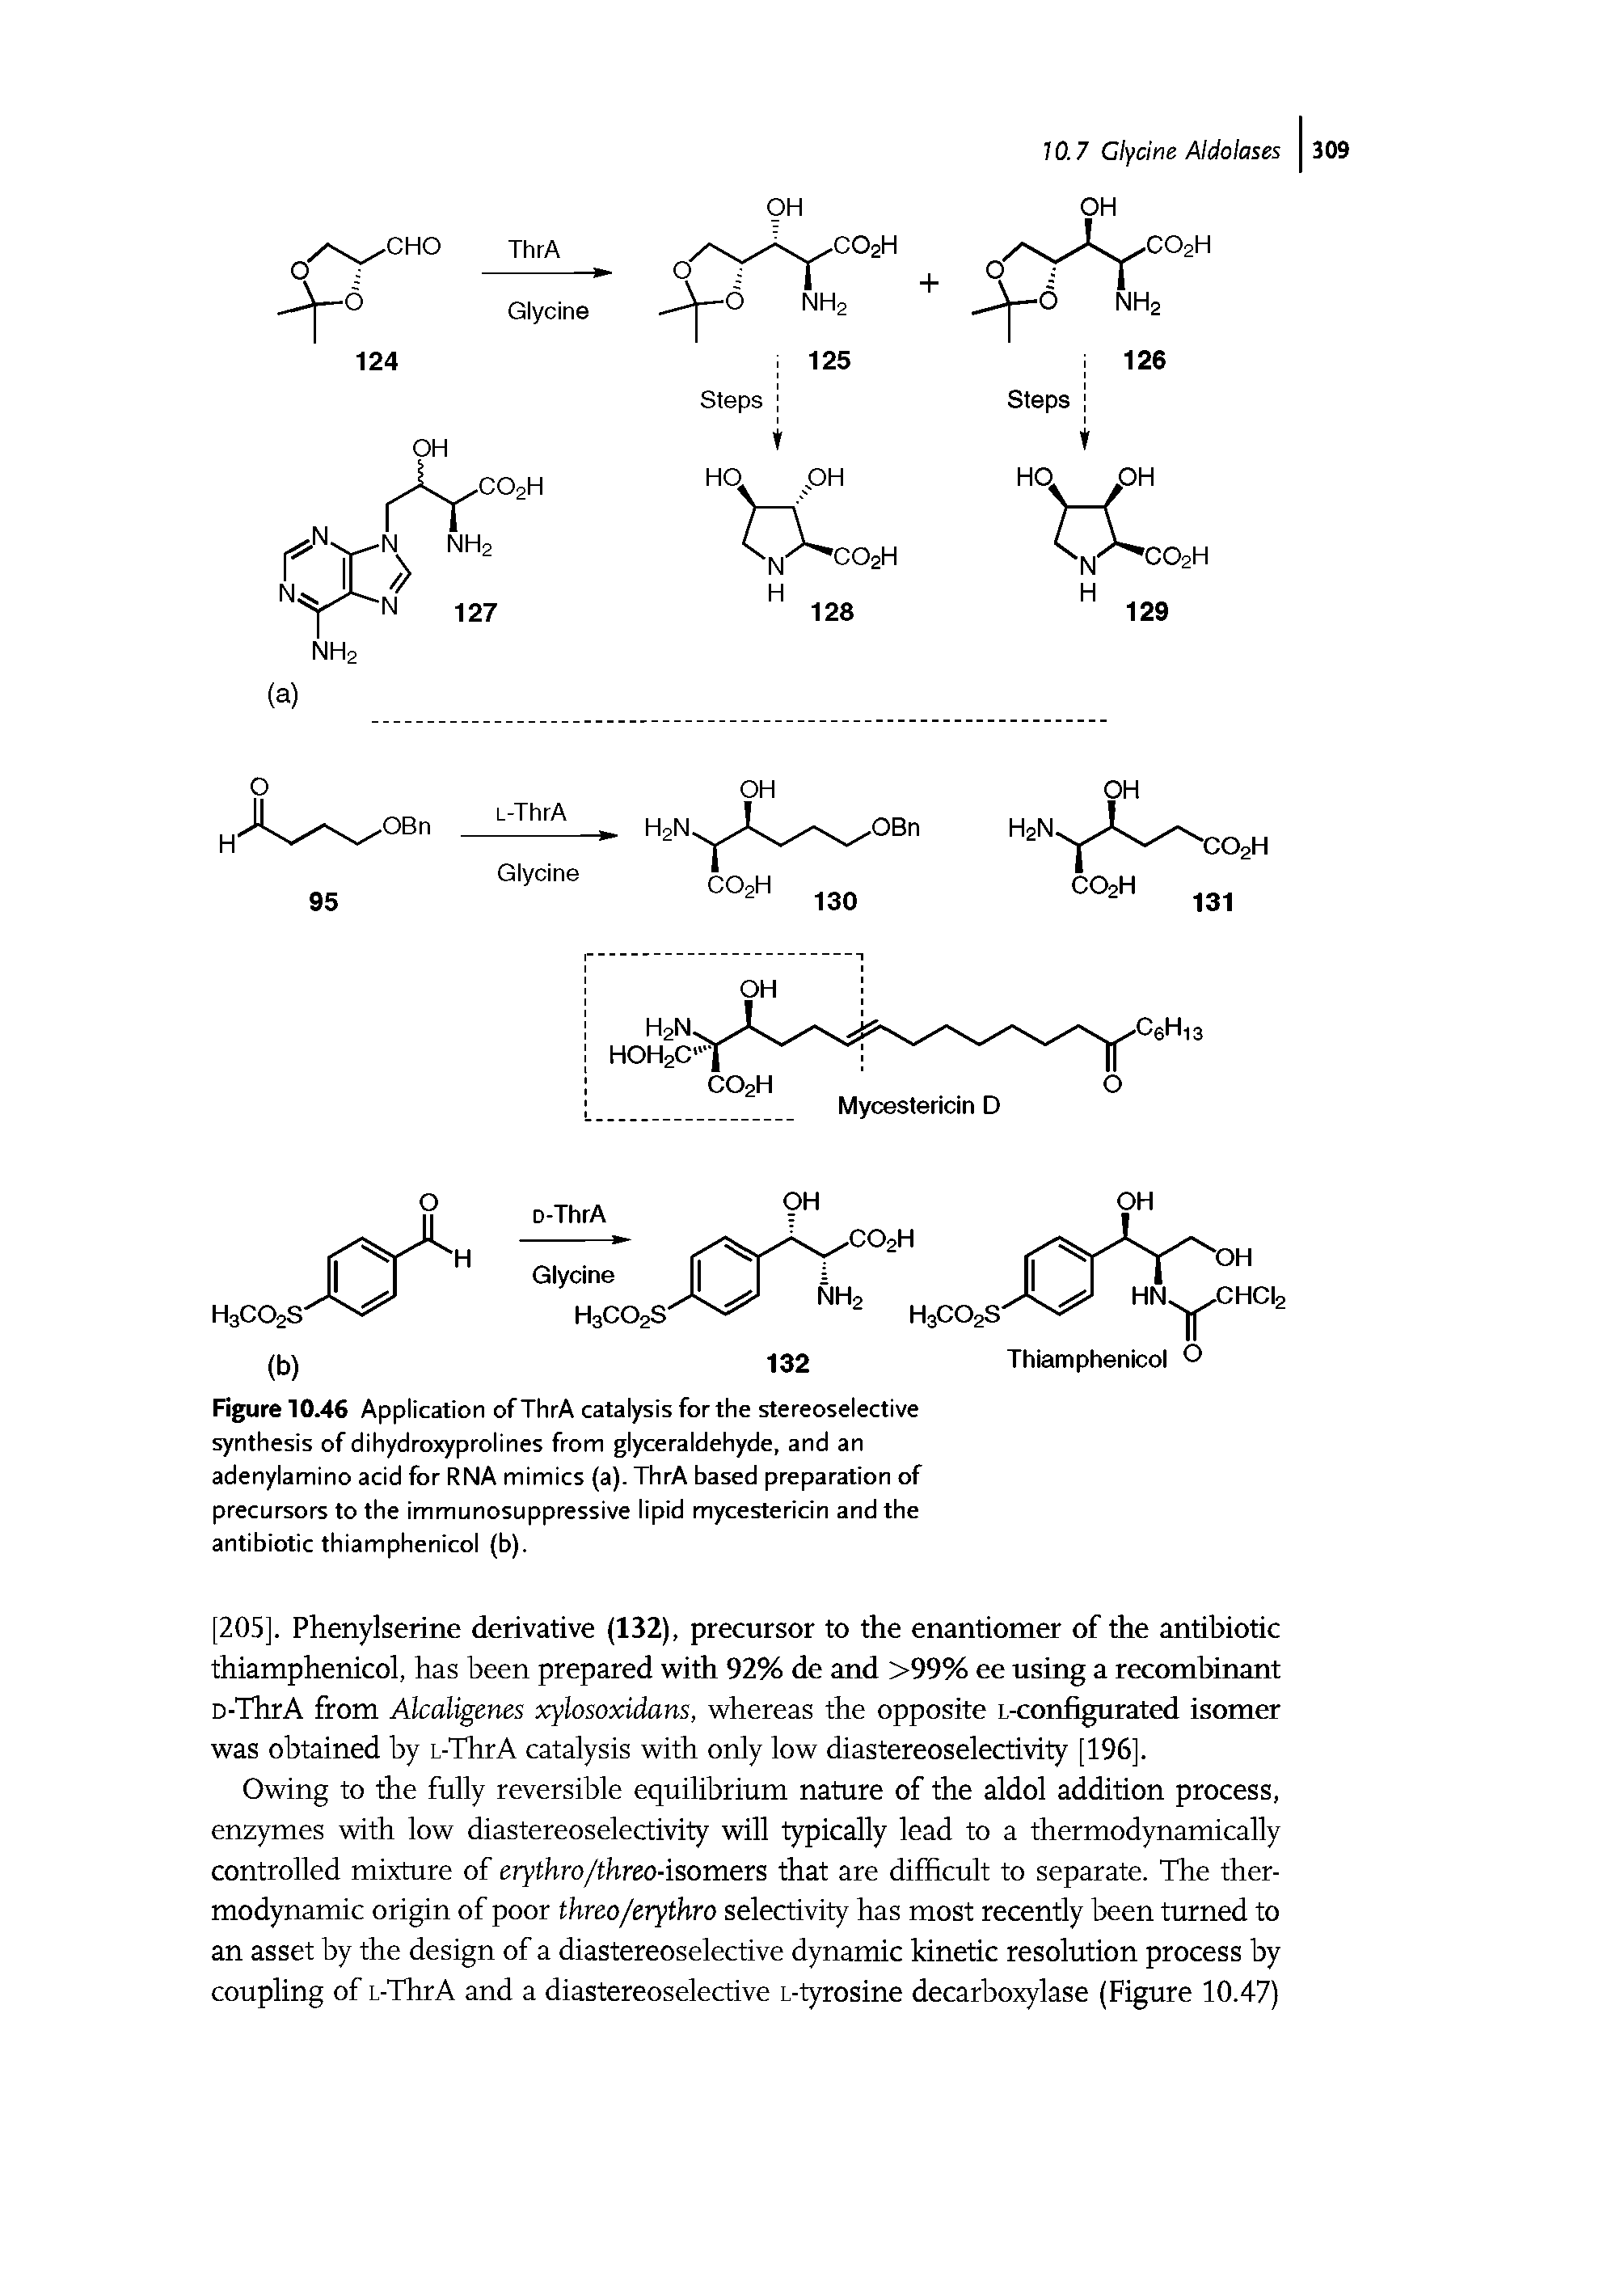 "Figure 10.46 Application of ThrA catalysis for the <a href=""/info/stereoselective_synthesis"">stereoselective synthesis</a> of dihydroxyprolines from glyceraldehyde, and an adenylamino acid for RNA mimics (a). ThrA <a href=""/info/bases_preparation"">based preparation</a> of precursors to the immunosuppressive lipid mycestericin and the antibiotic thiamphenicol (b)."